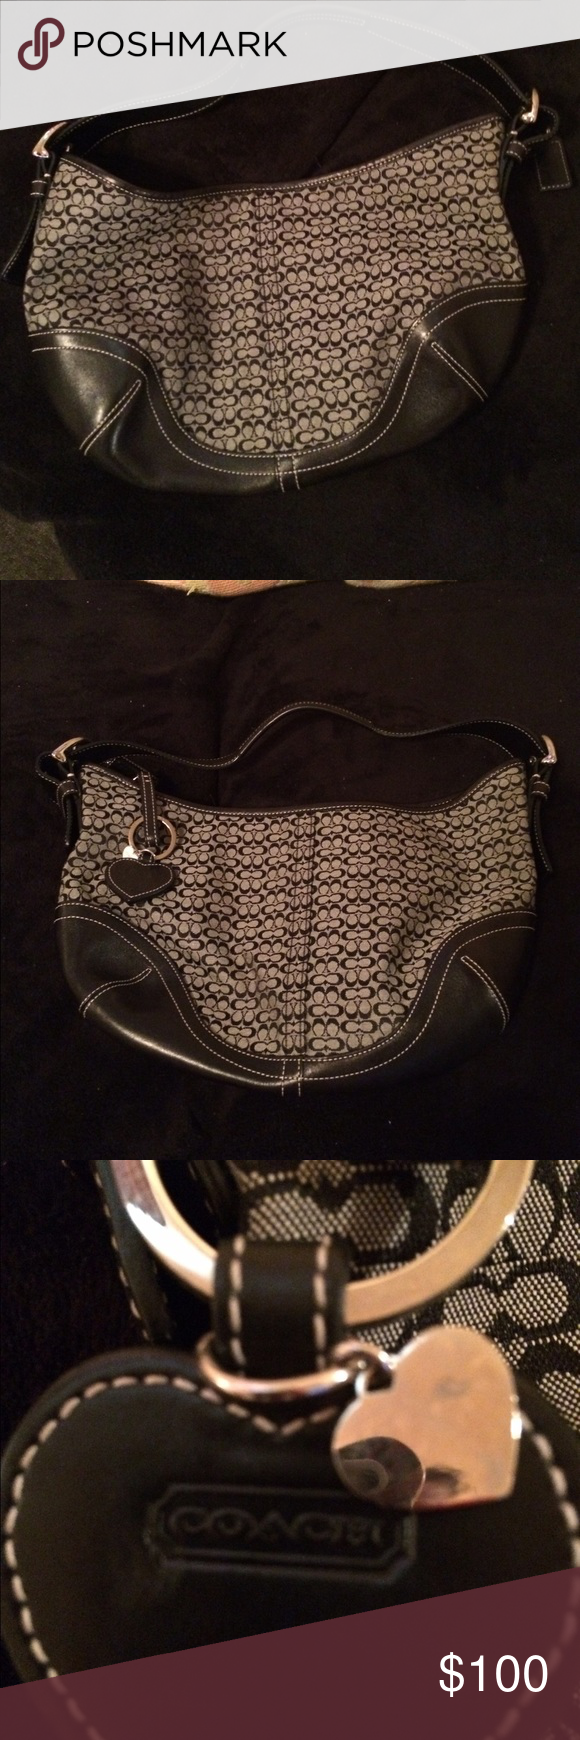 Med. coach woman's black handbag It med. size black lather coach woman's handbag with two small compartments and then a zipper compartment it nice like new Coach Bags Shoulder Bags